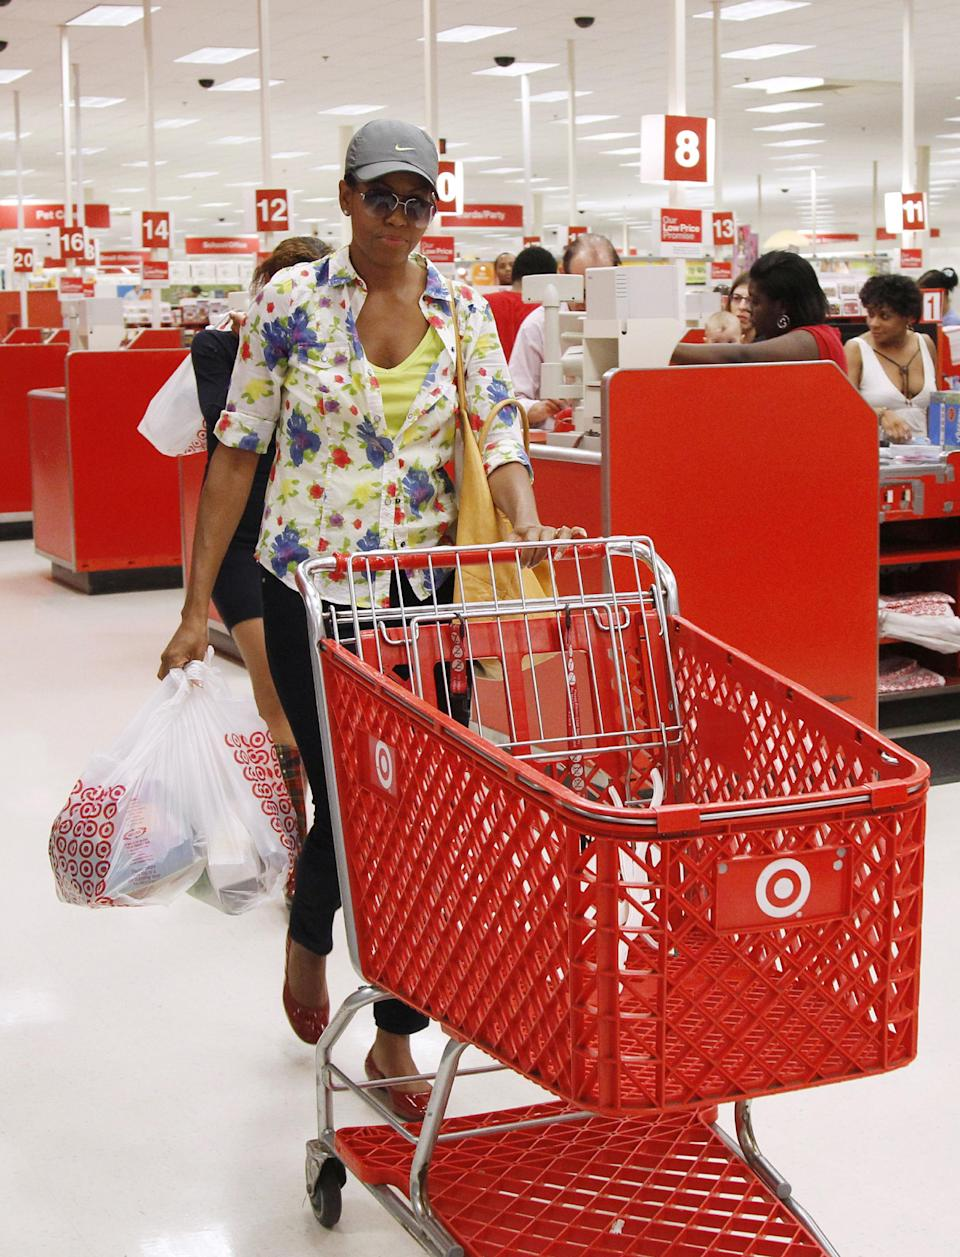 First lady Michelle Obama, wearing a hat and sunglasses, pushes a shopping cart as she carries her purchases at a Target department store in Alexandria, Va., Thursday, Sept. 29, 2011, after doing some shopping. (AP Photo/Charles Dharapak)